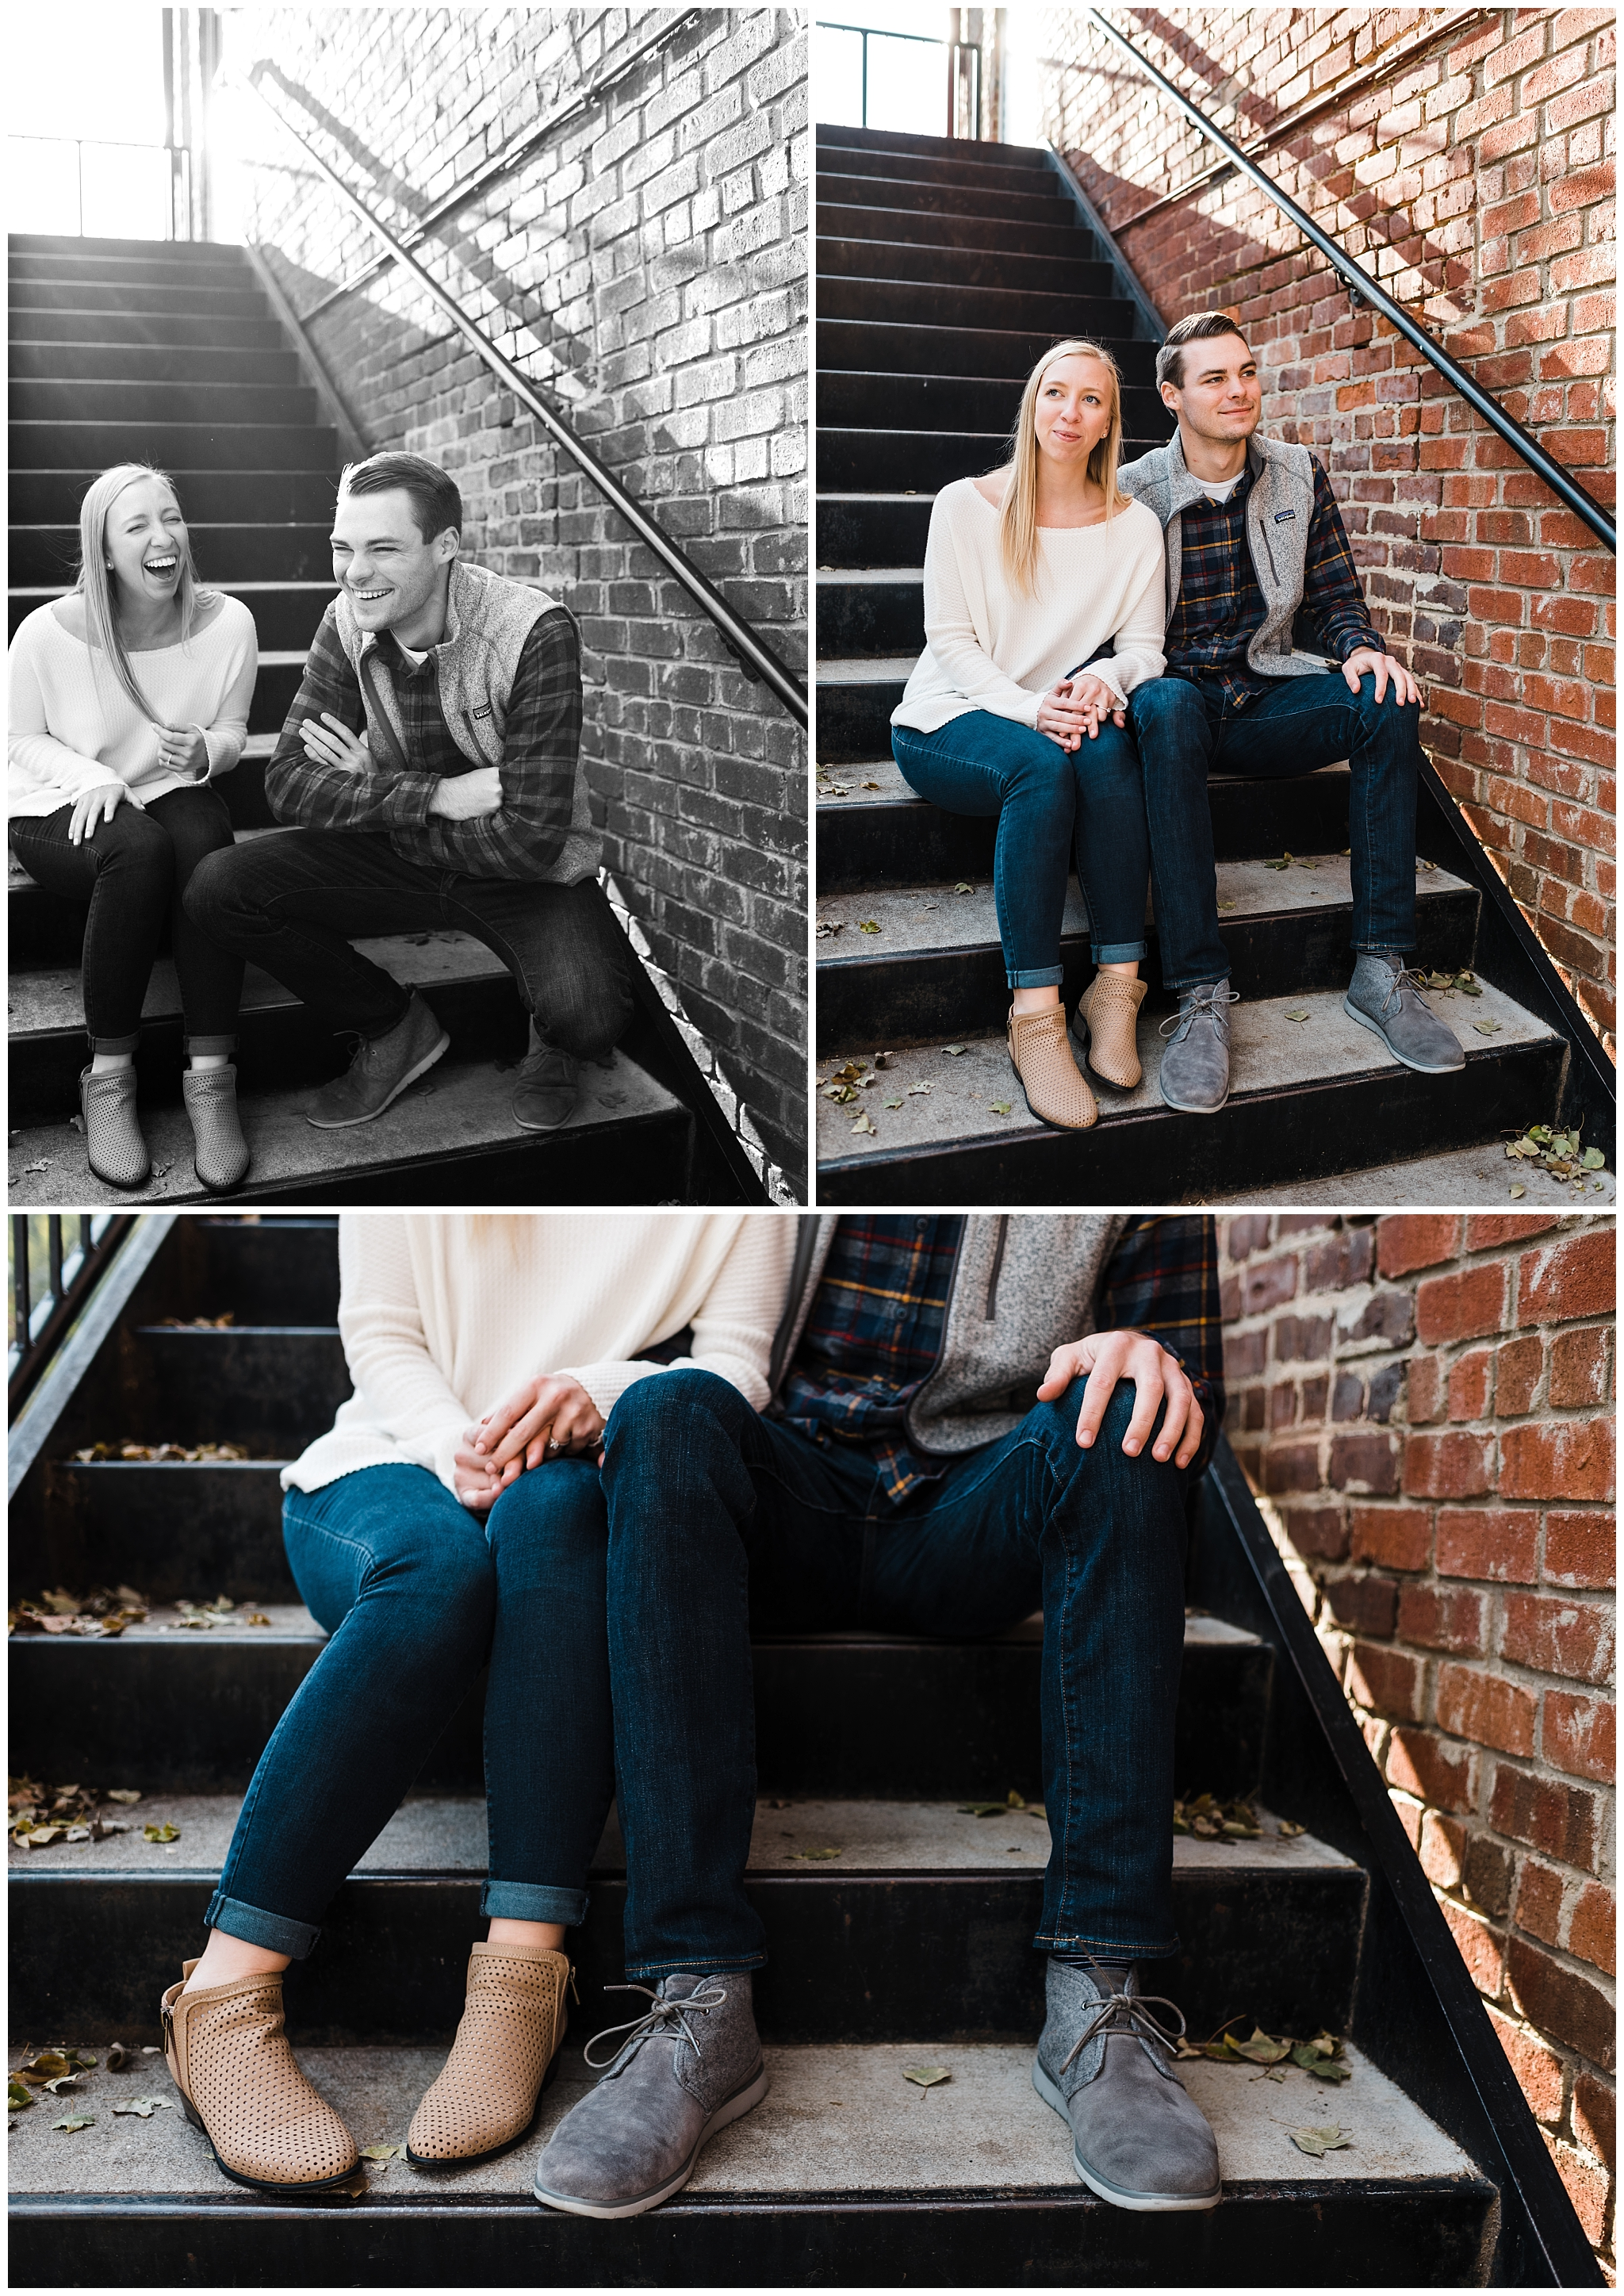 Easterday Creative | Adventurous wedding photographer and storyteller | Alyssa + James | Adventurous Charlotte Engagement | Charlotte, NC